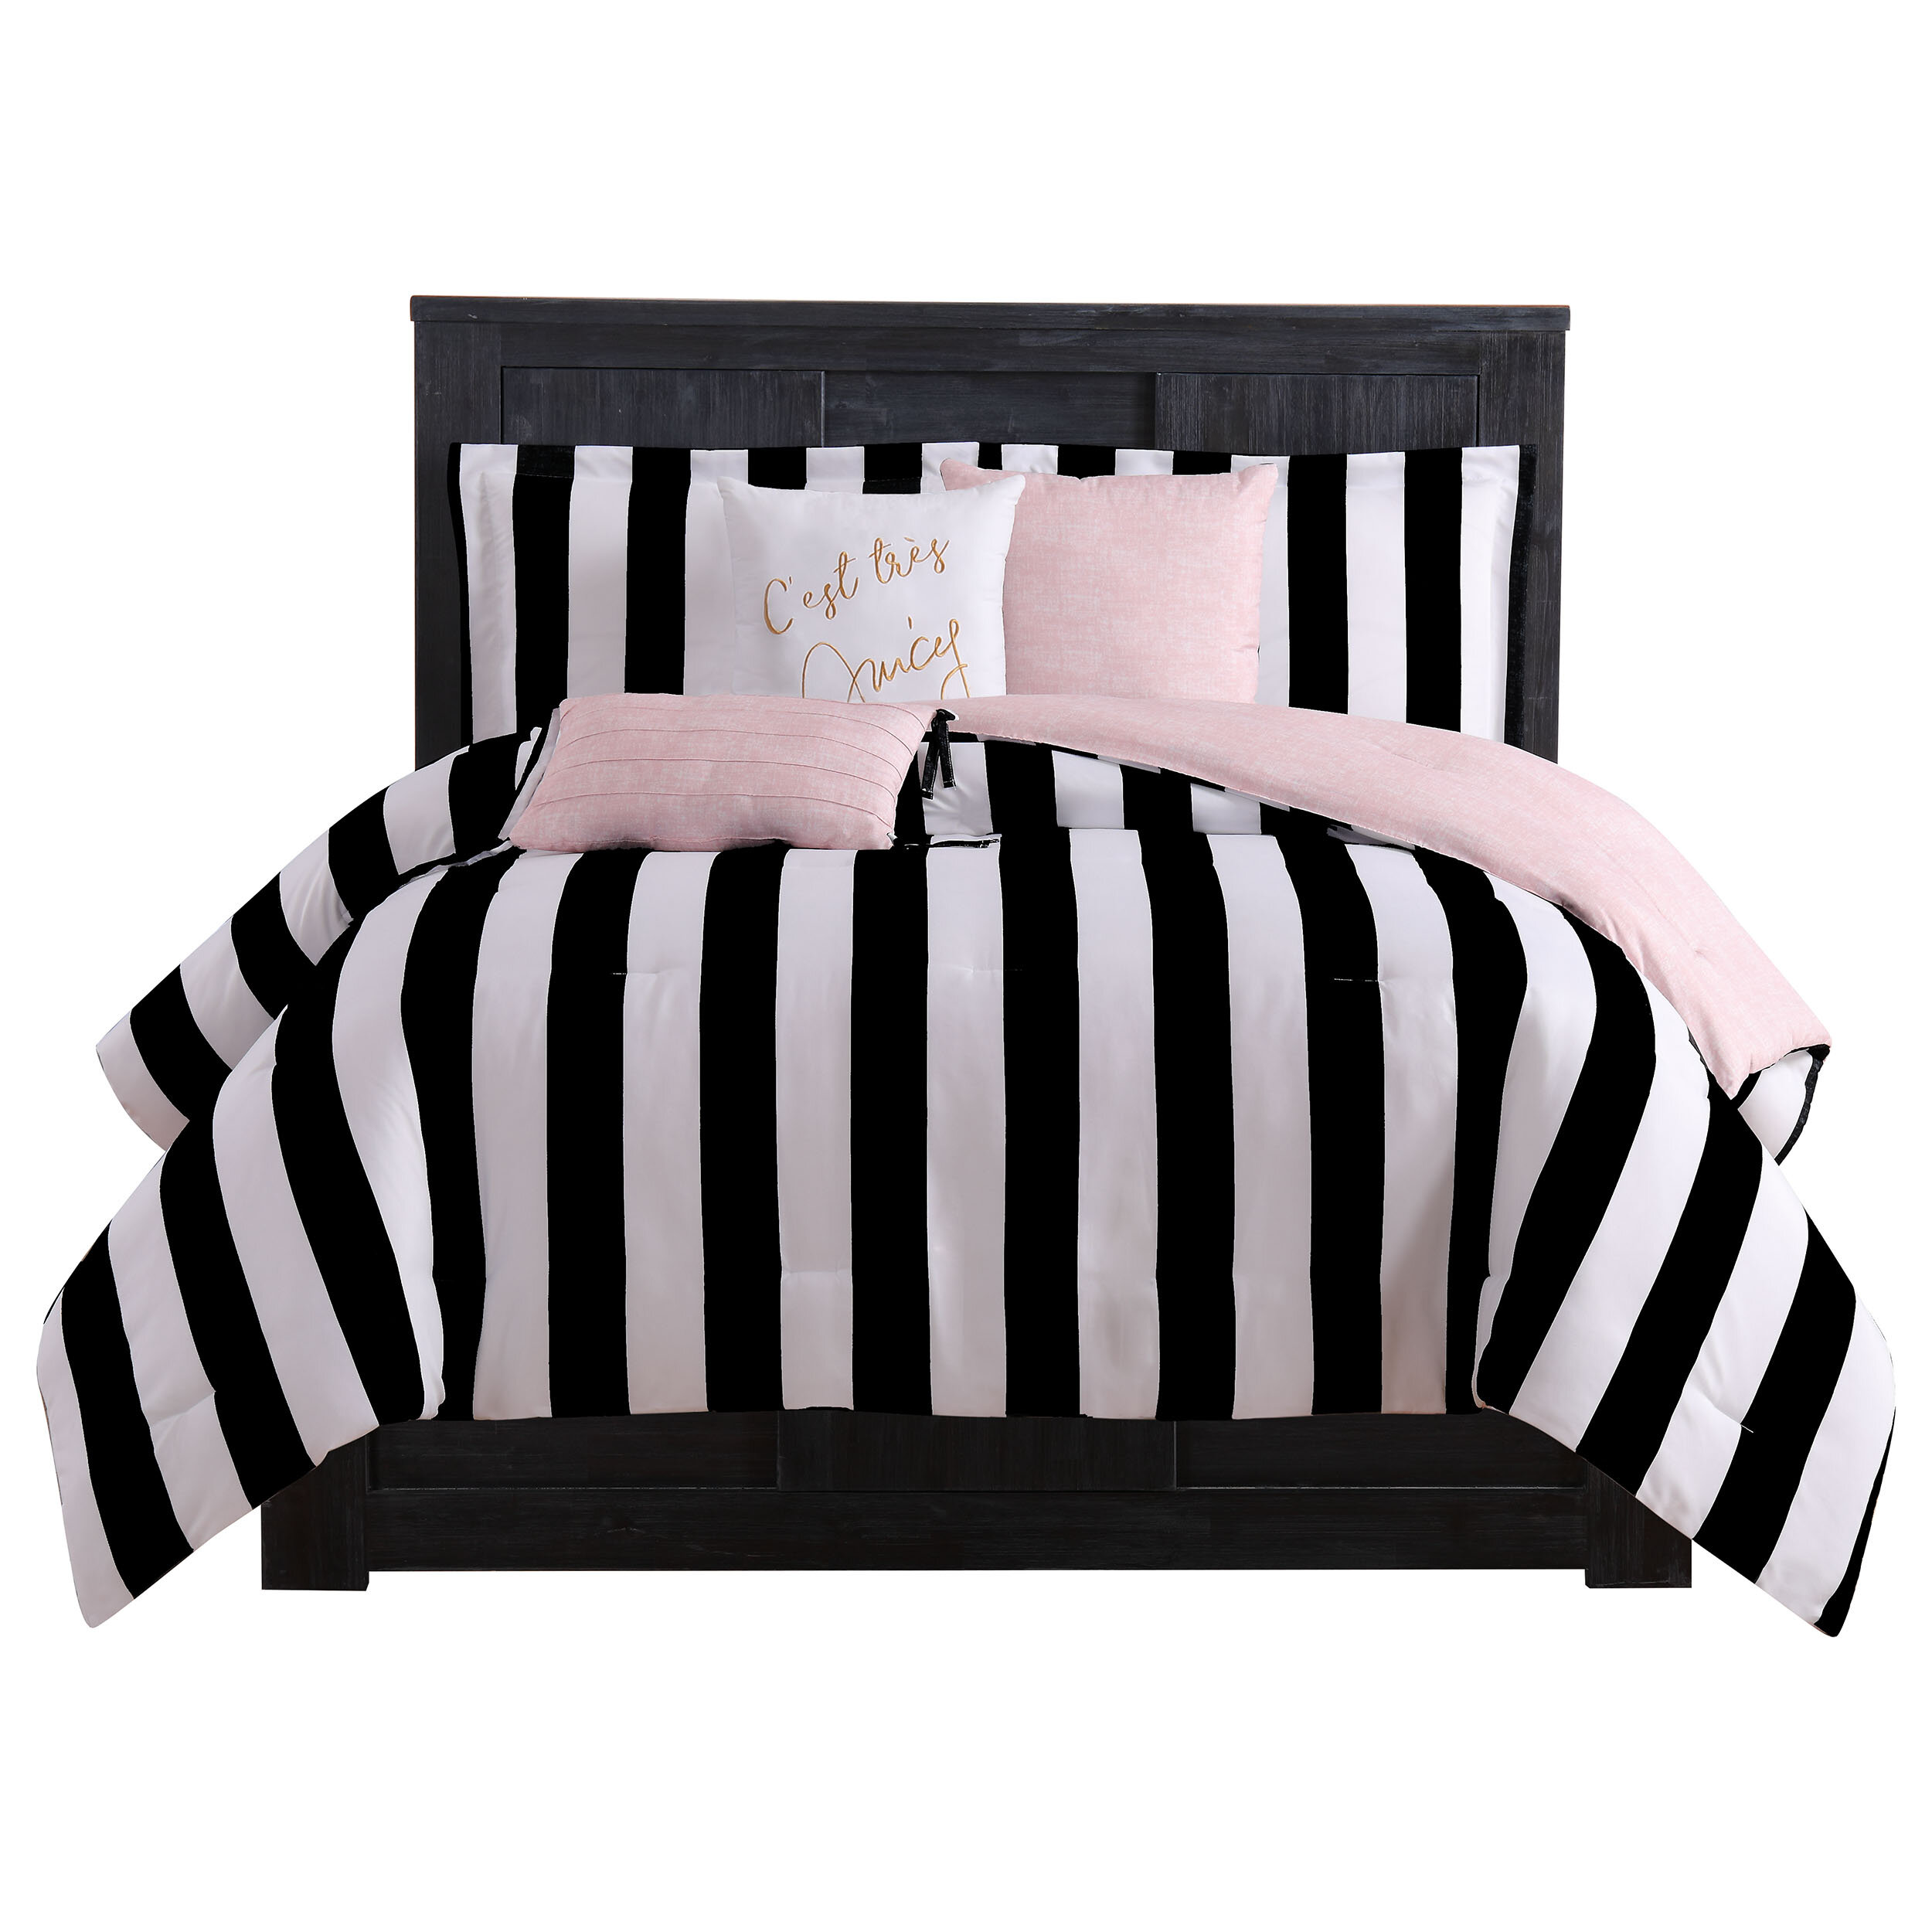 BEAUTIFUL MODERN CHIC CONTEMPORARY REVERSIBLE BLACK WHITE COMFORTER PILLOWS SET